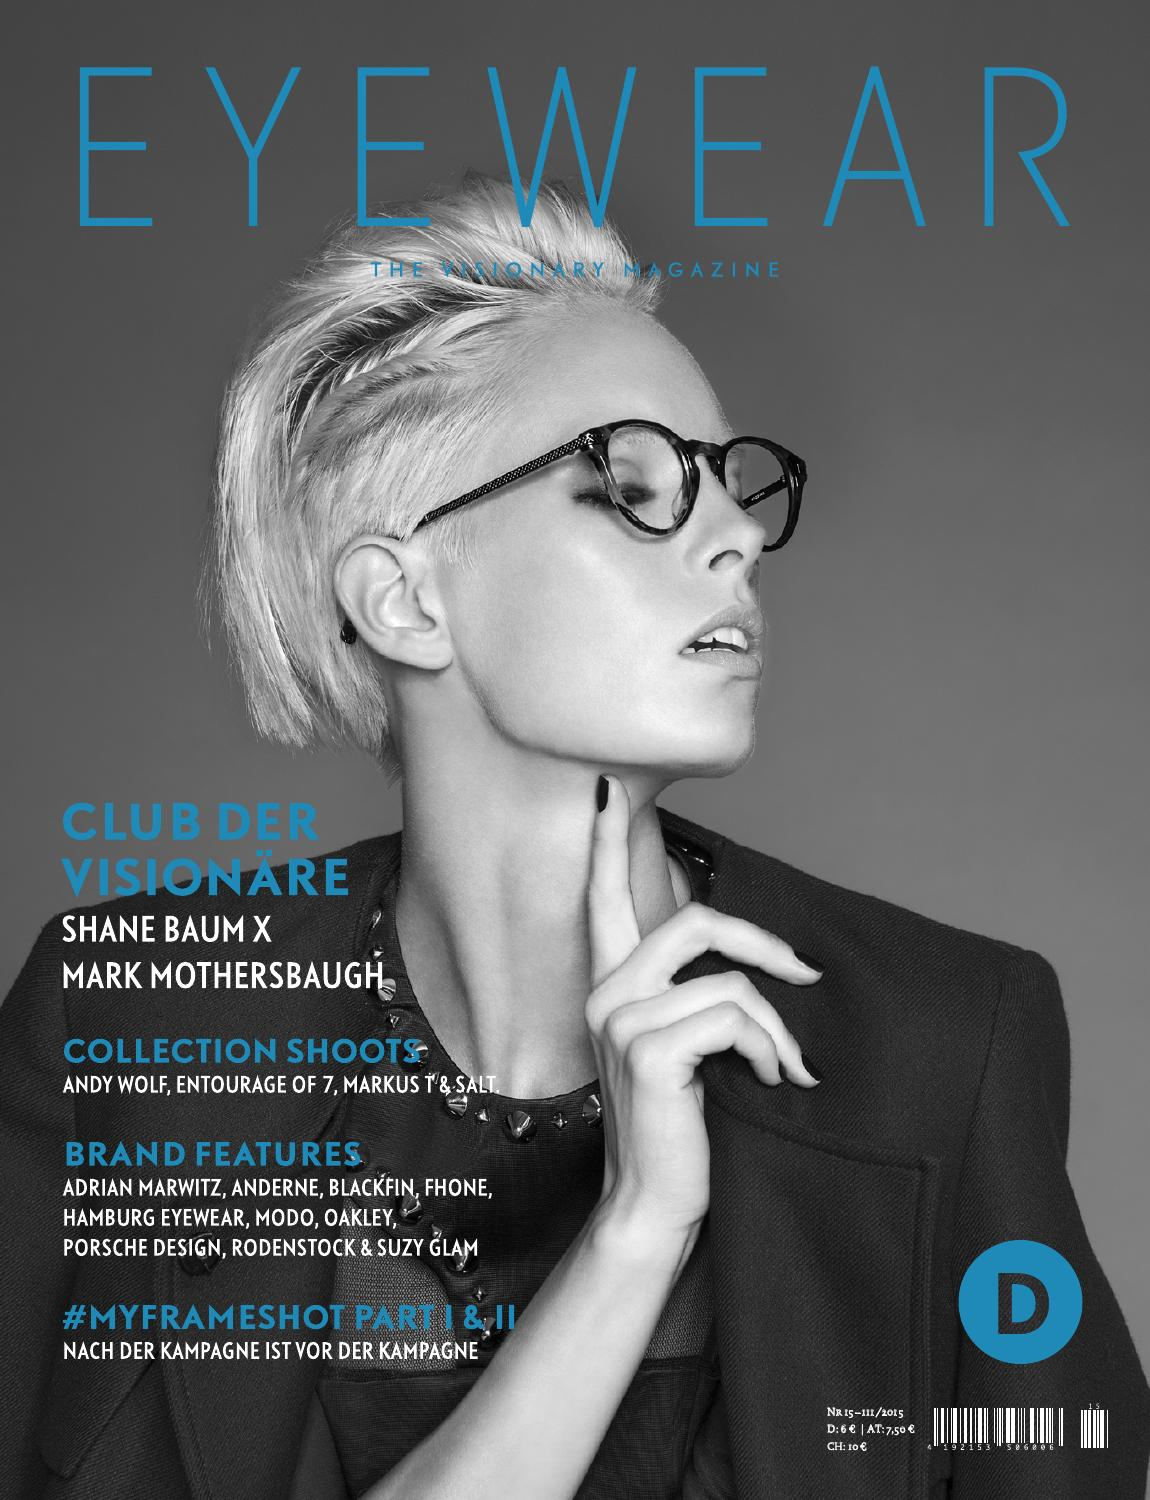 625693be1ca Eyewear Issue 15 by Monday Publishing GmbH - issuu